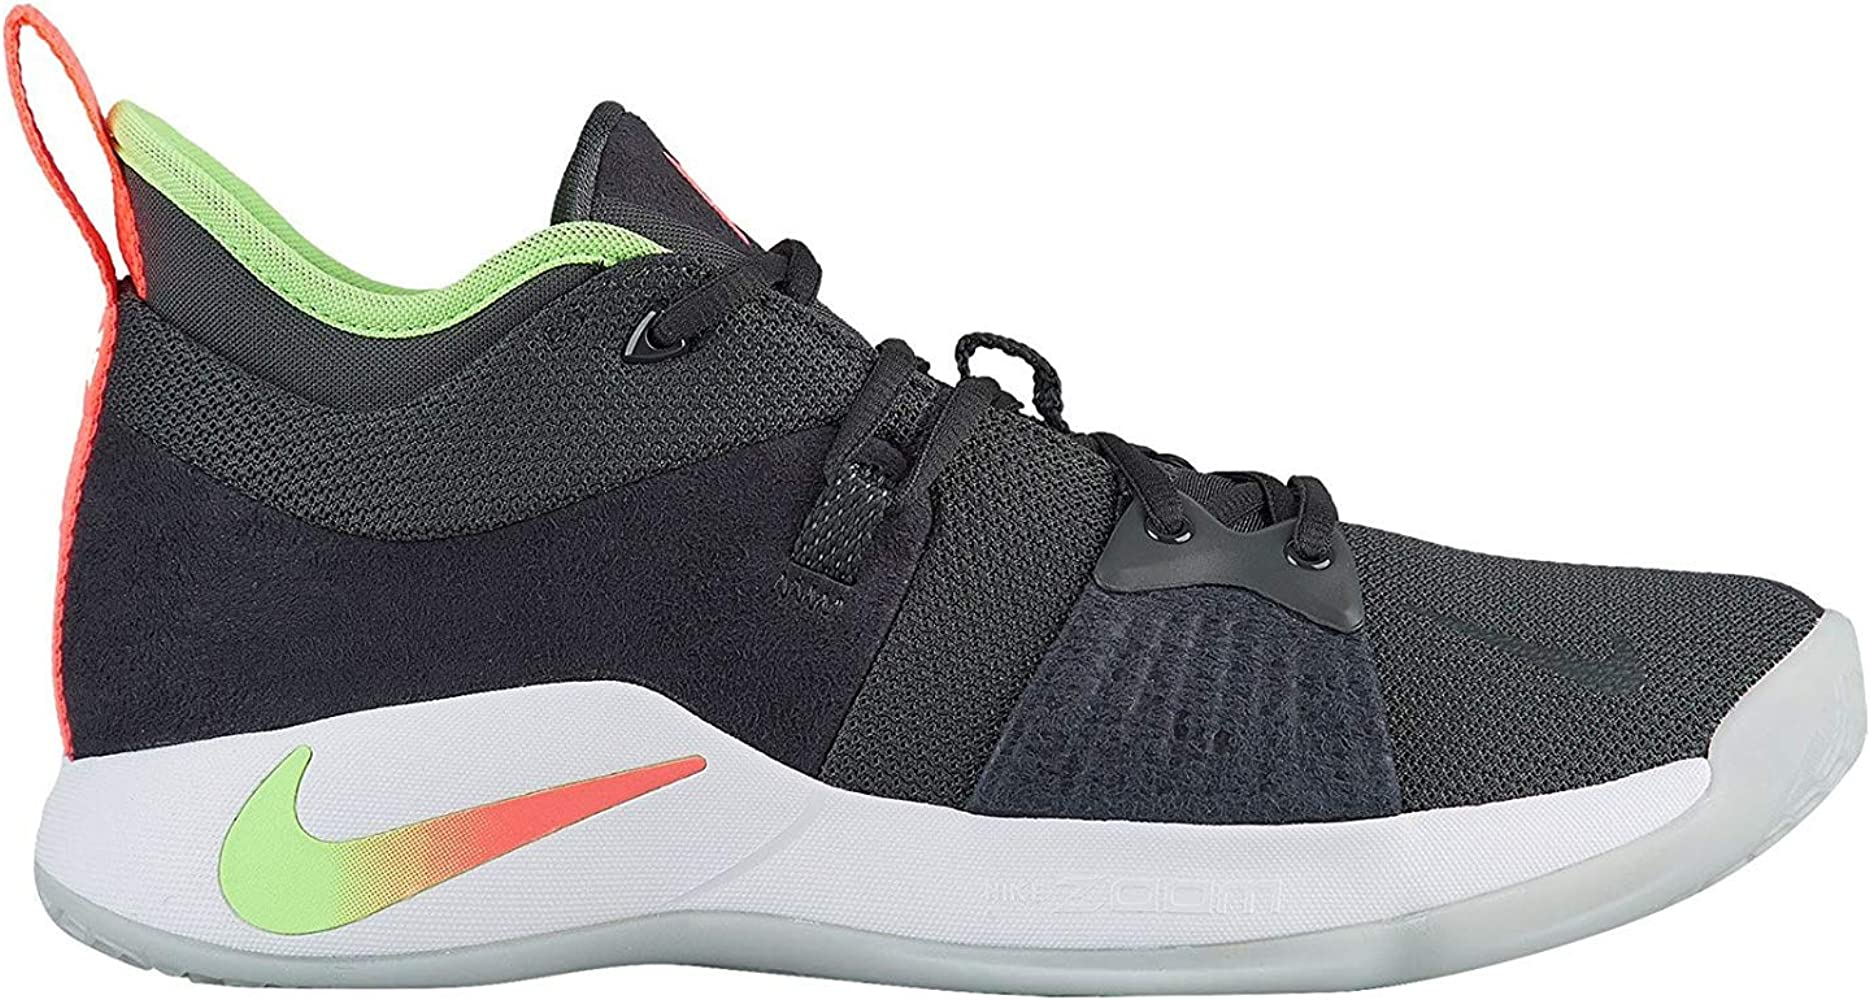 separation shoes 4e05f daf9e Men's PG 2 Basketball Shoes (11.5, Anthracite/Hot Punch)